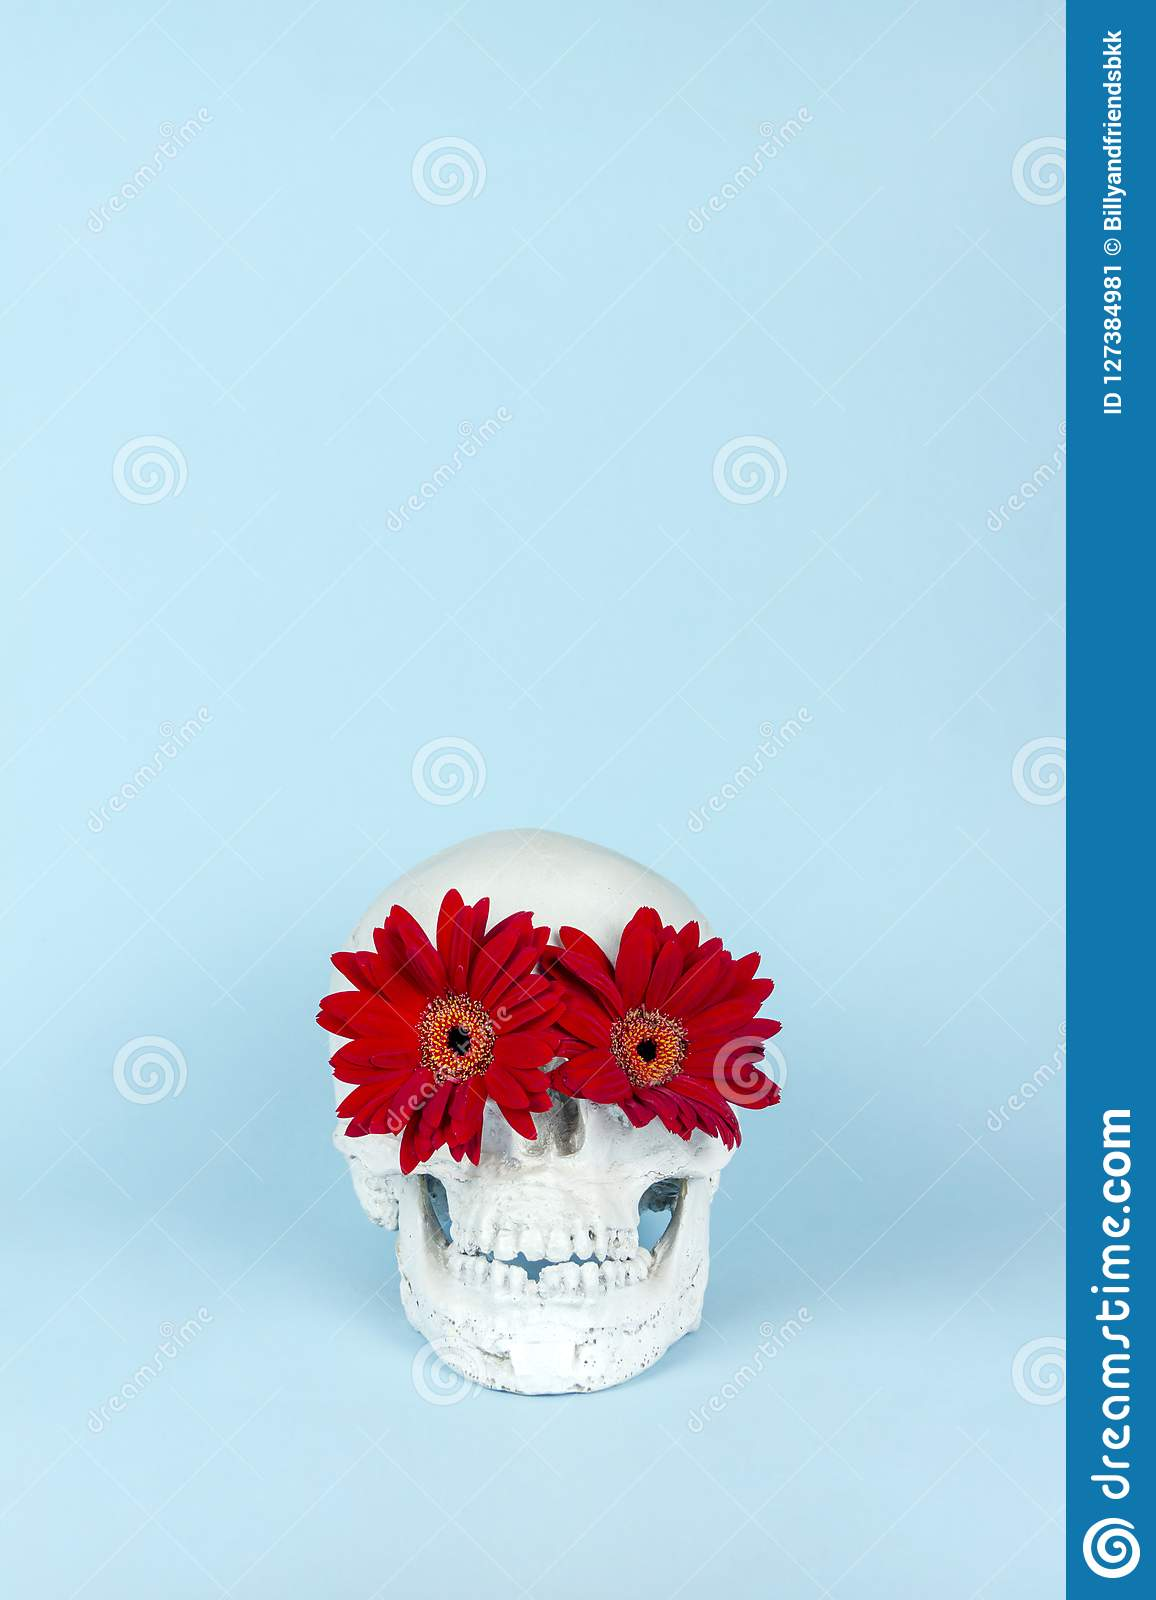 Halloween skull with red flower on pastel blue background